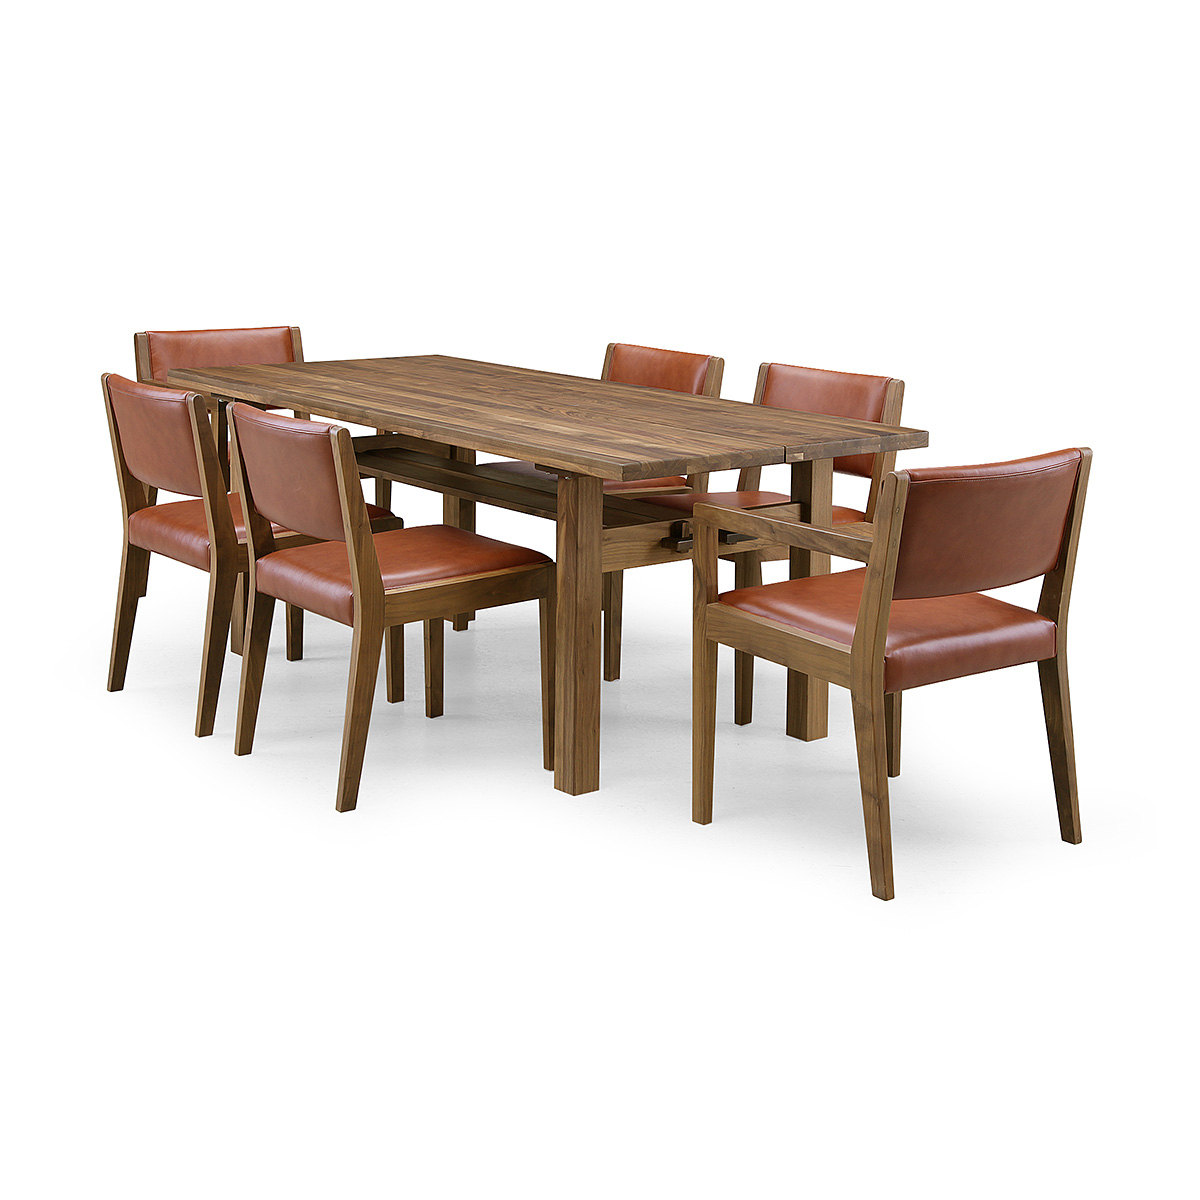 35%OFF [7点セット] GREEN home style ROSE MARY DINING TABLE 180 + ARM CHAIR A + SIDE CHAIR A (グリーン ローズマリー ダイニングテーブル 180 アームチェア A サイドチェア A) 岩倉 榮利 (ウォールナット材)【同梱不可】